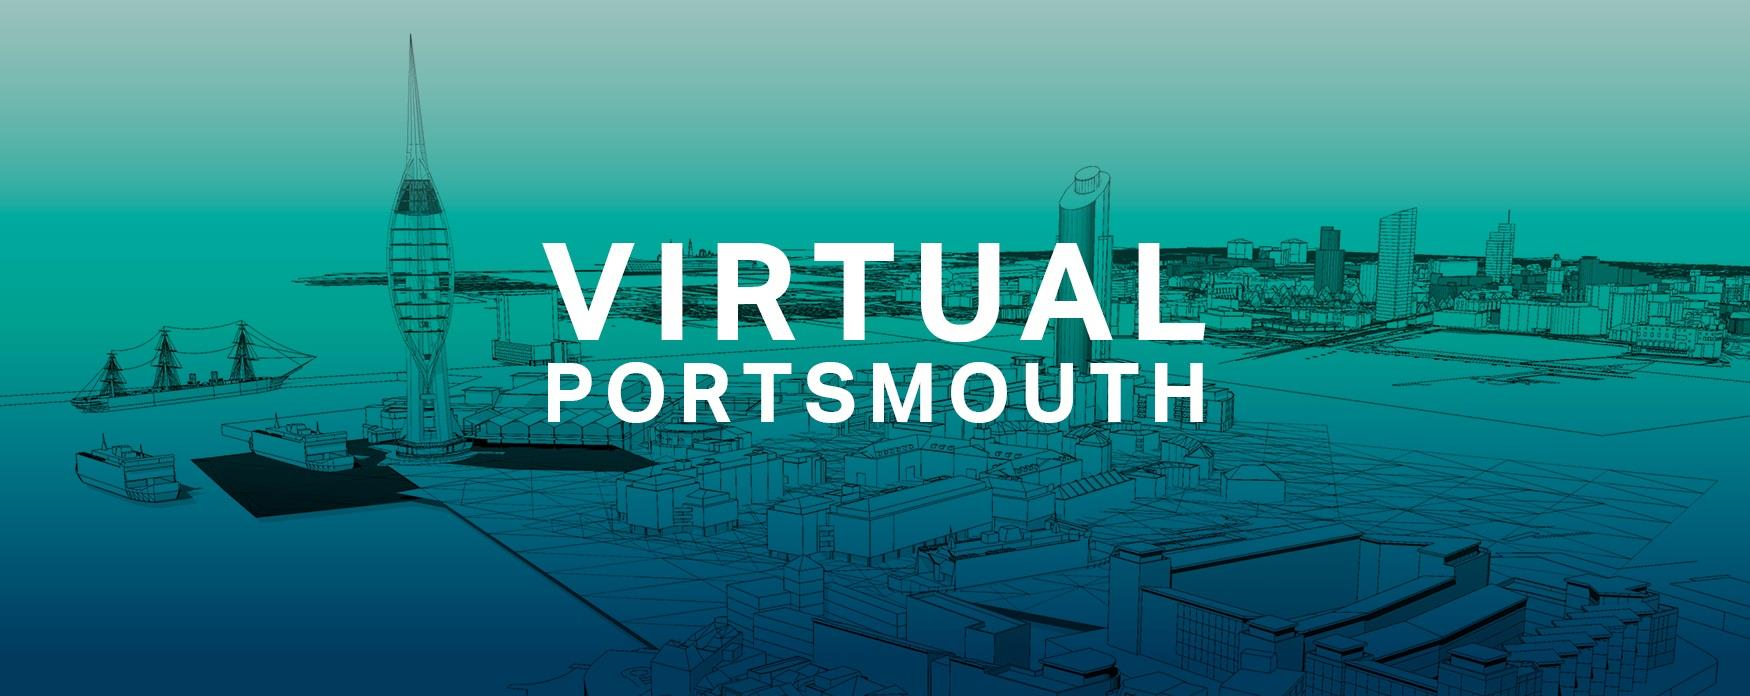 Graphic for #VirtualPortsmouth, featuring an illustration of the Portsmouth skyline